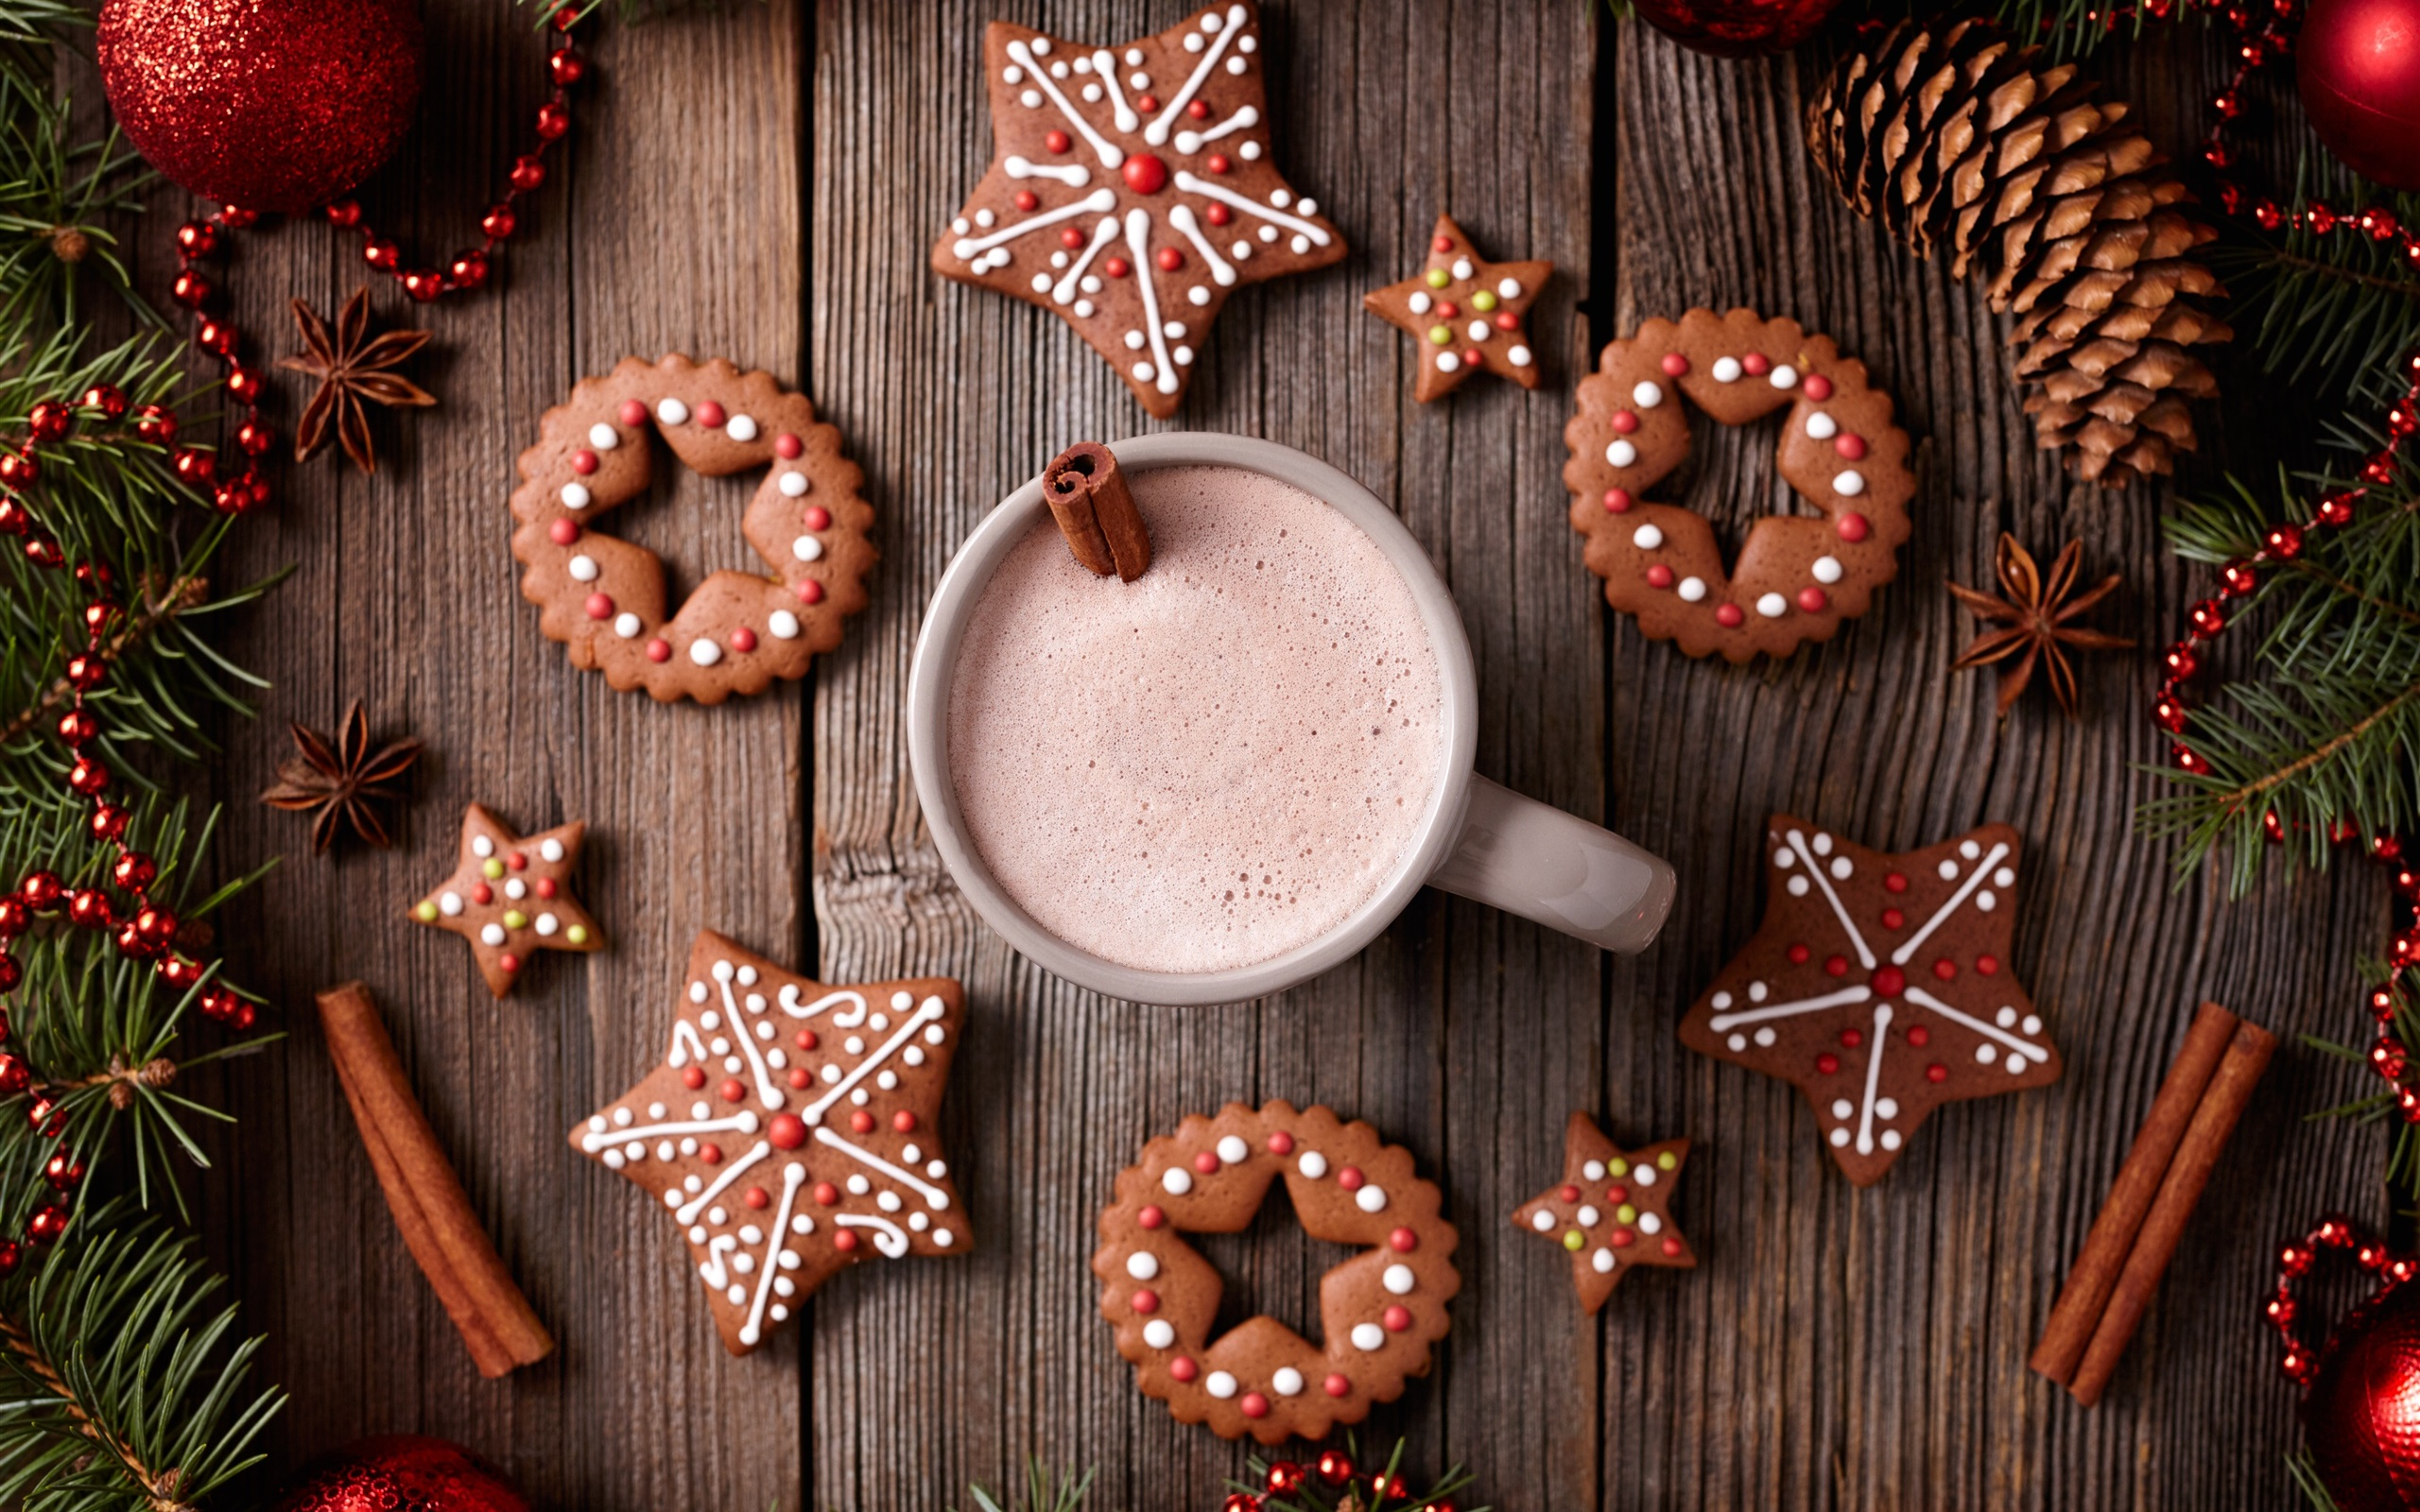 2560x1600 christmas wallpaper: Merry Christmas, Cookies, Cup, Drinks Wallpaper